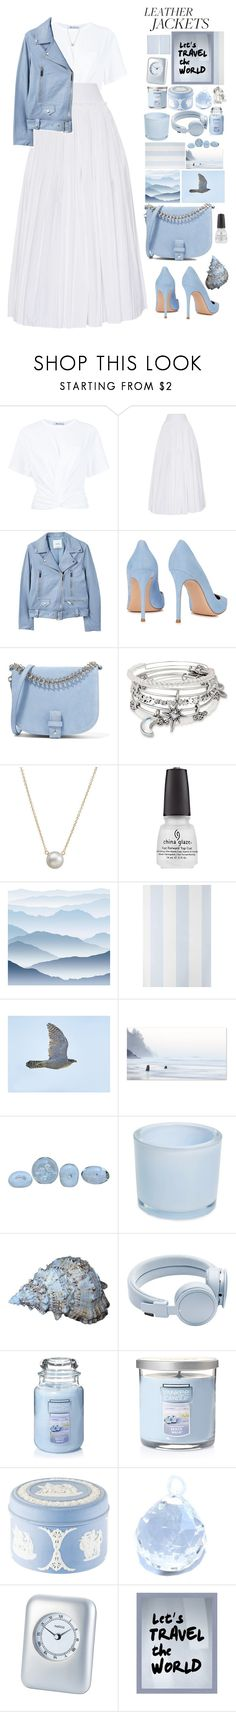 """Leather jacket"" by foximperial ❤ liked on Polyvore featuring T By Alexander Wang, Alberta Ferretti, MANGO, Gianvito Rossi, Little Liffner, Alex and Ani, Dogeared, York Wallcoverings, Anthropologie and Drew Doggett Photography"